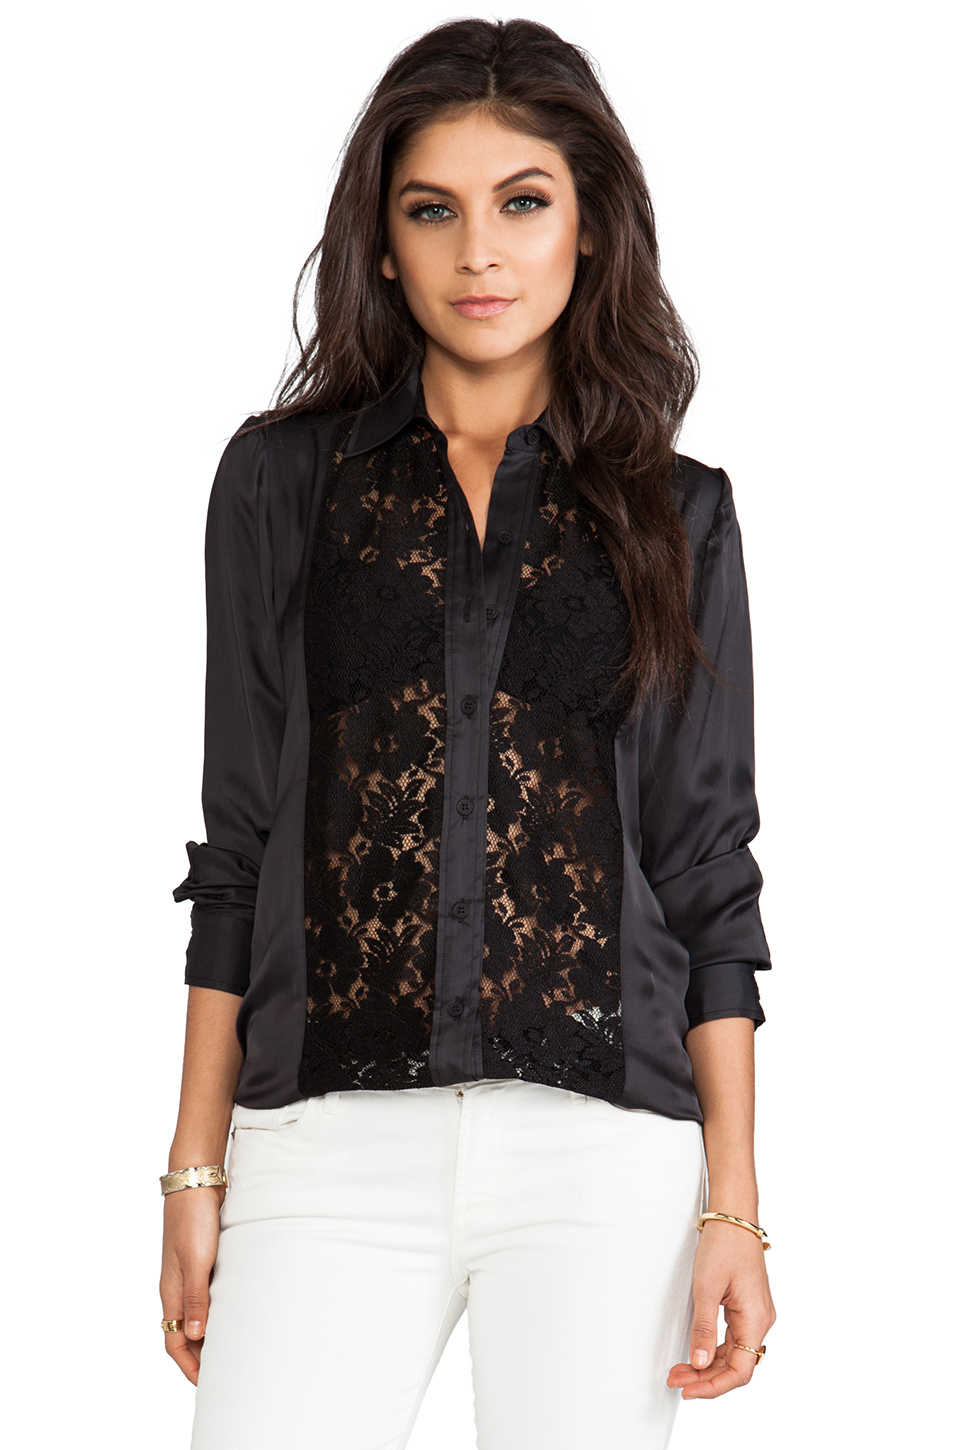 Smythe Lace Panel Shirt in Black at Revolve Clothing